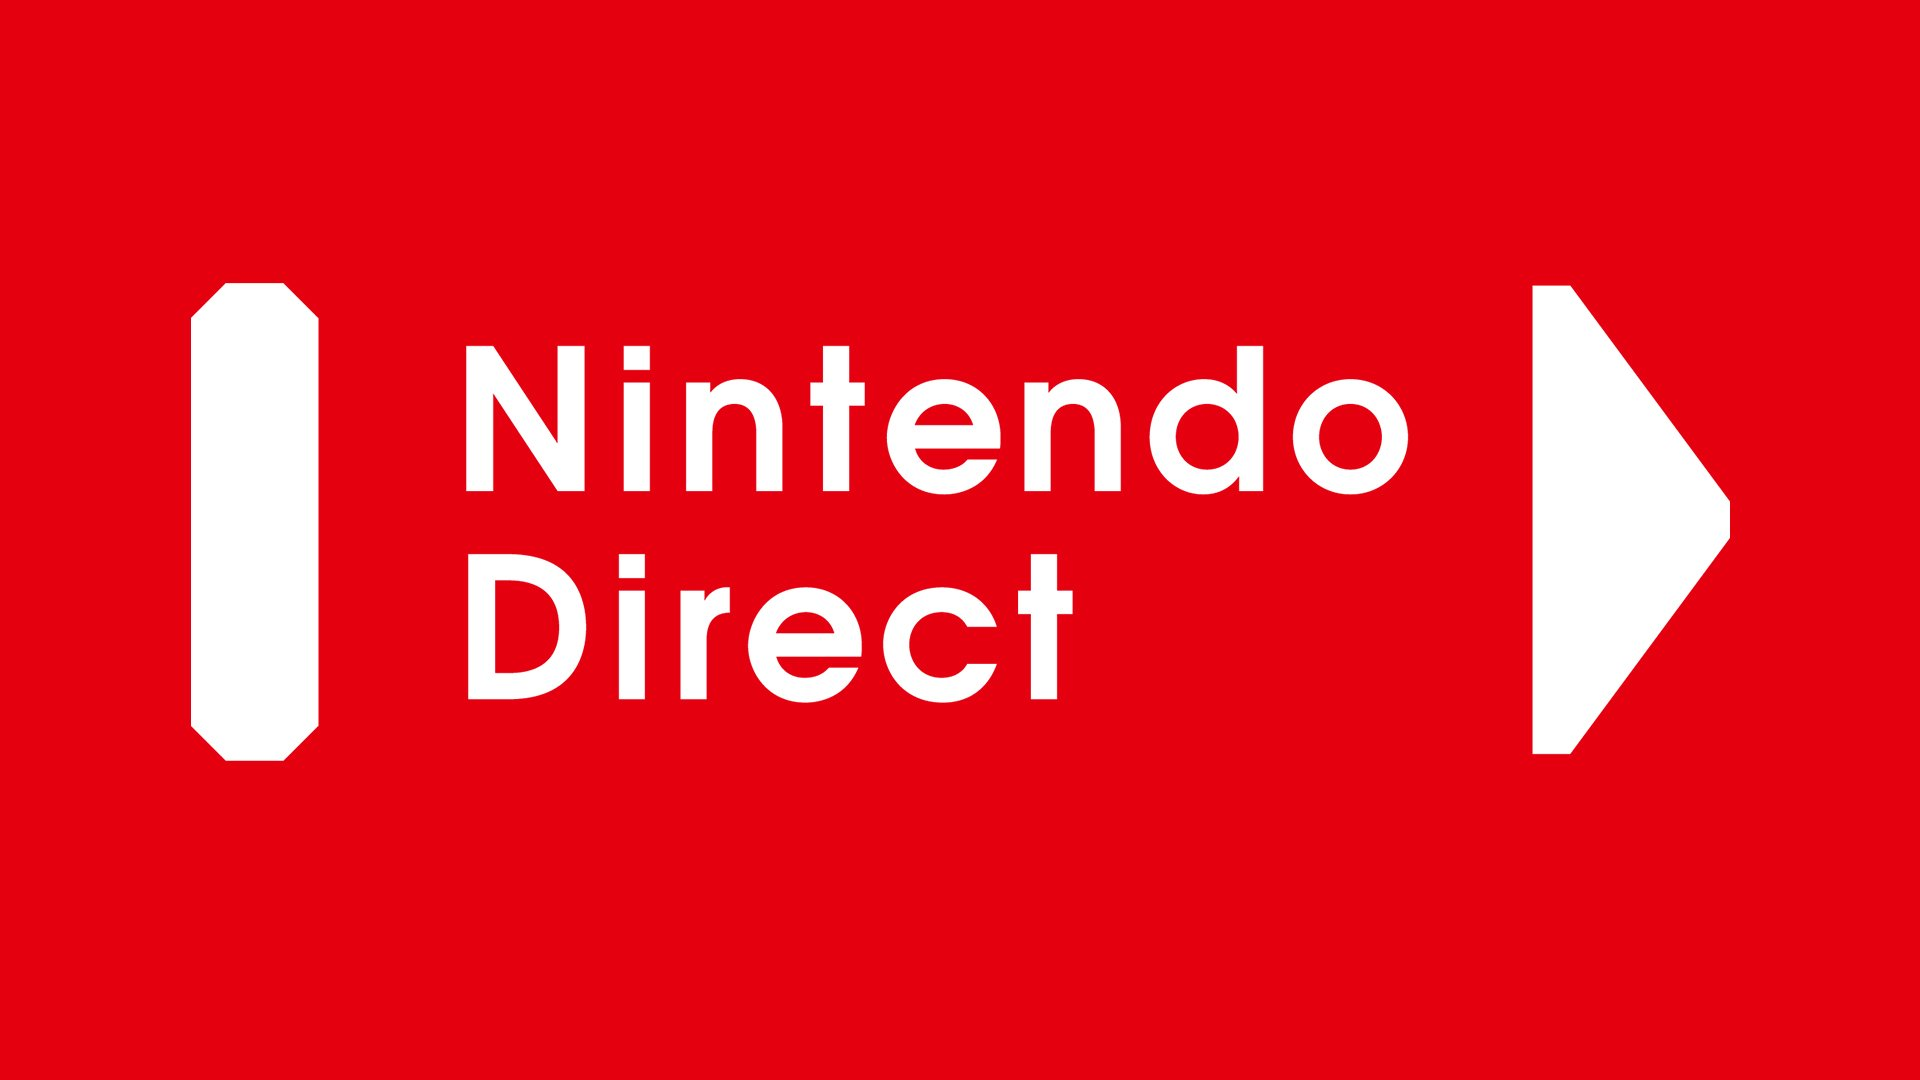 nintendo direct - photo #18